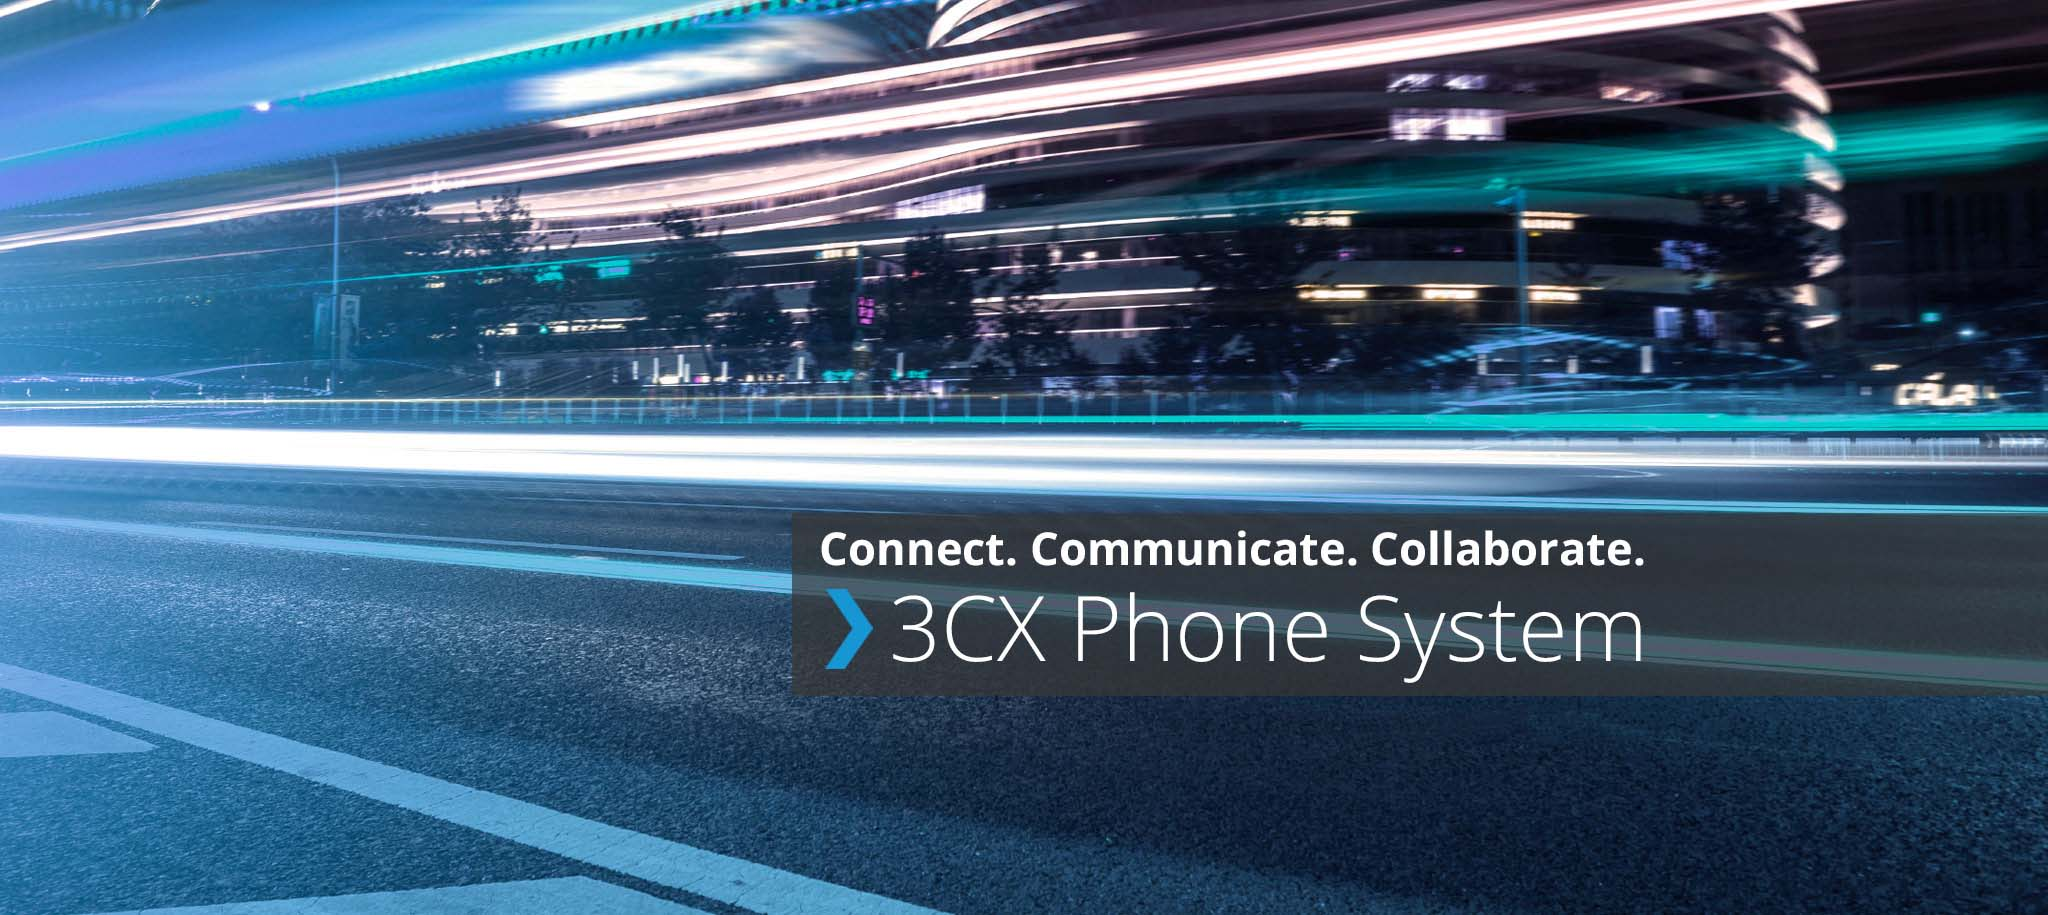 3CX Phone System for Business | Exeter | AME Solutions